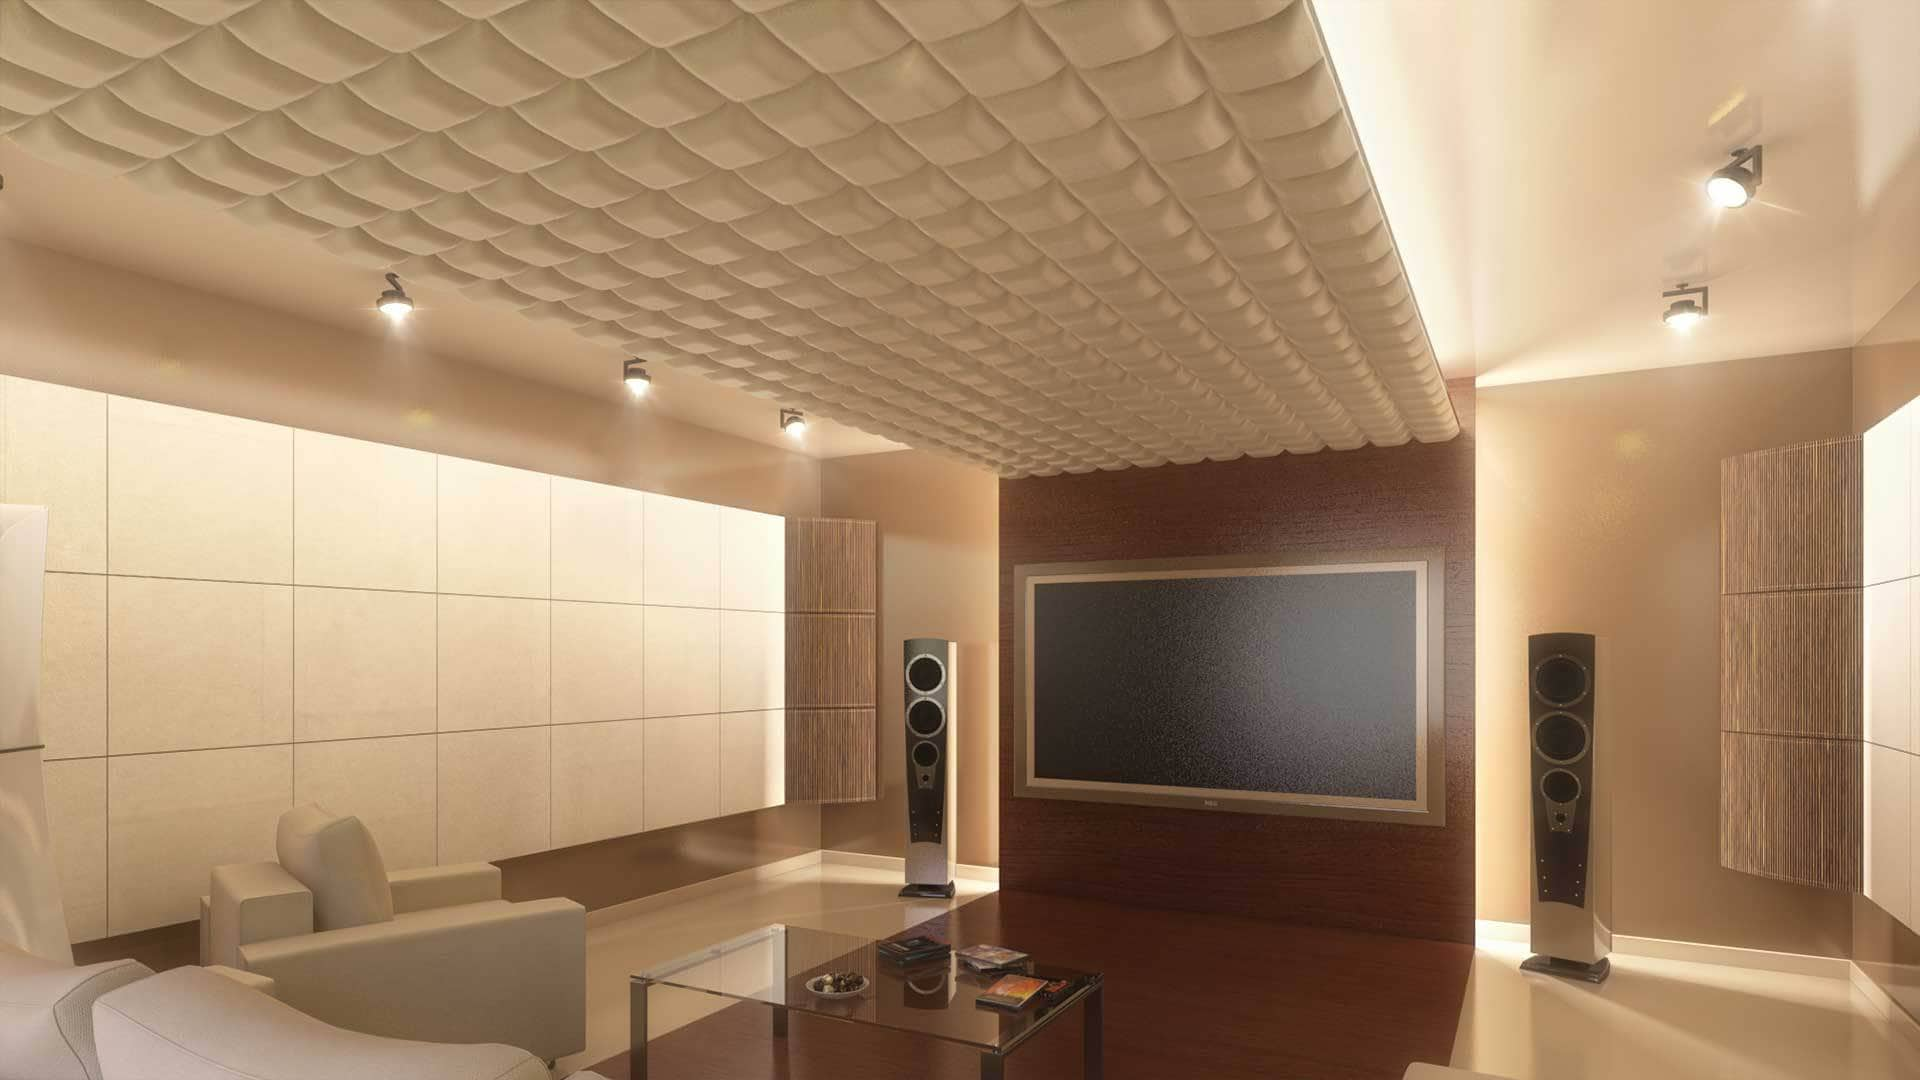 Artnovion acoustic panels on cinema ceiling for absorption